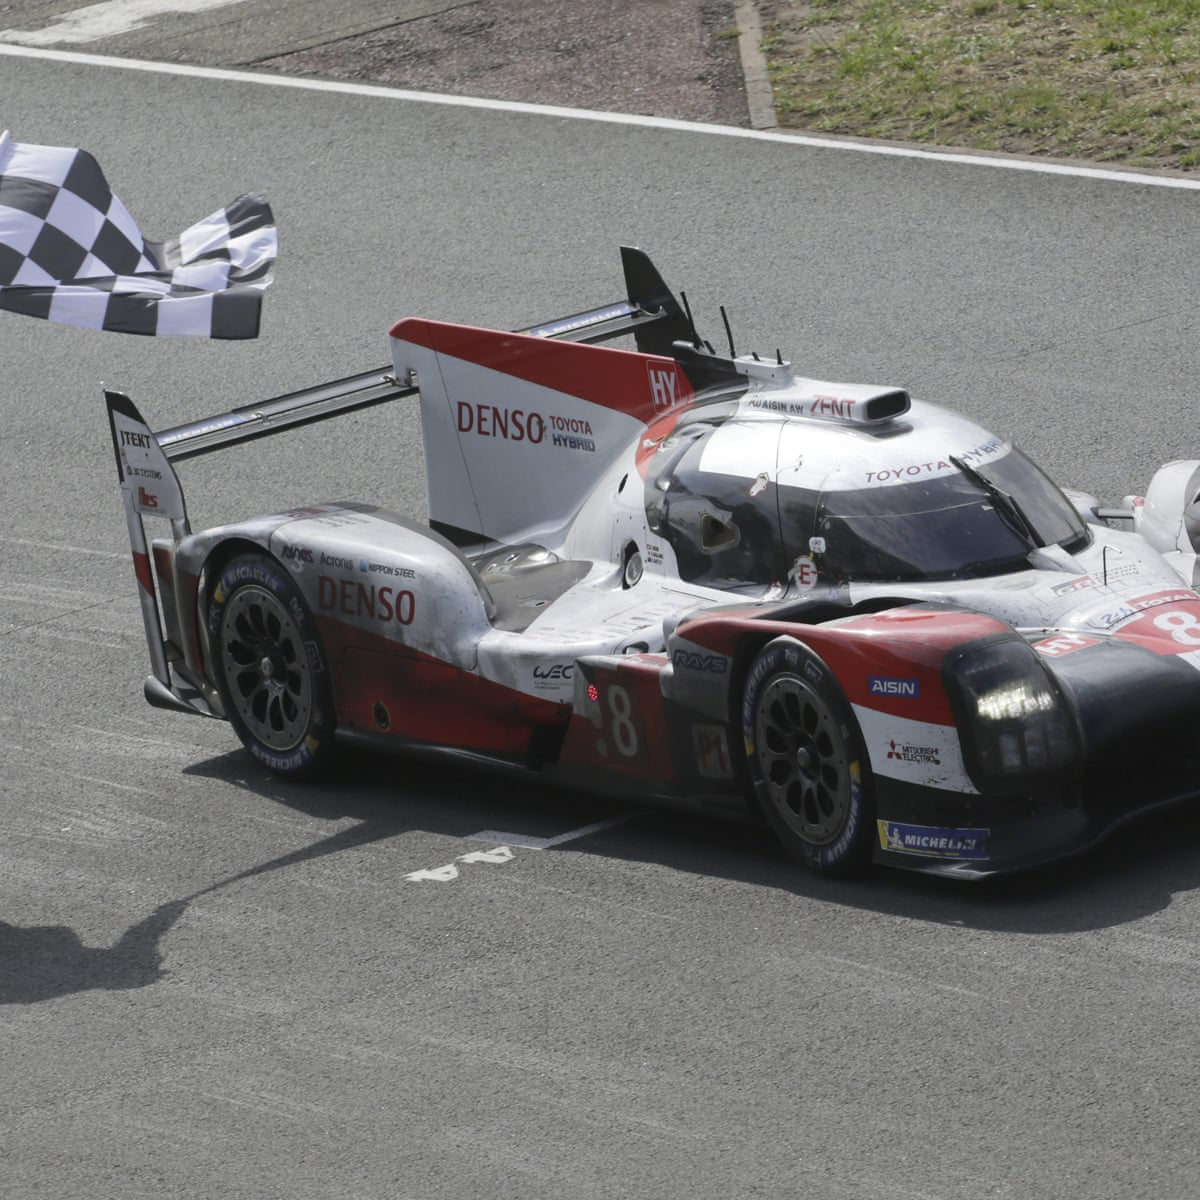 toyota complete hat trick of wins in deserted le mans 24 hours race sport the guardian wins in deserted le mans 24 hours race